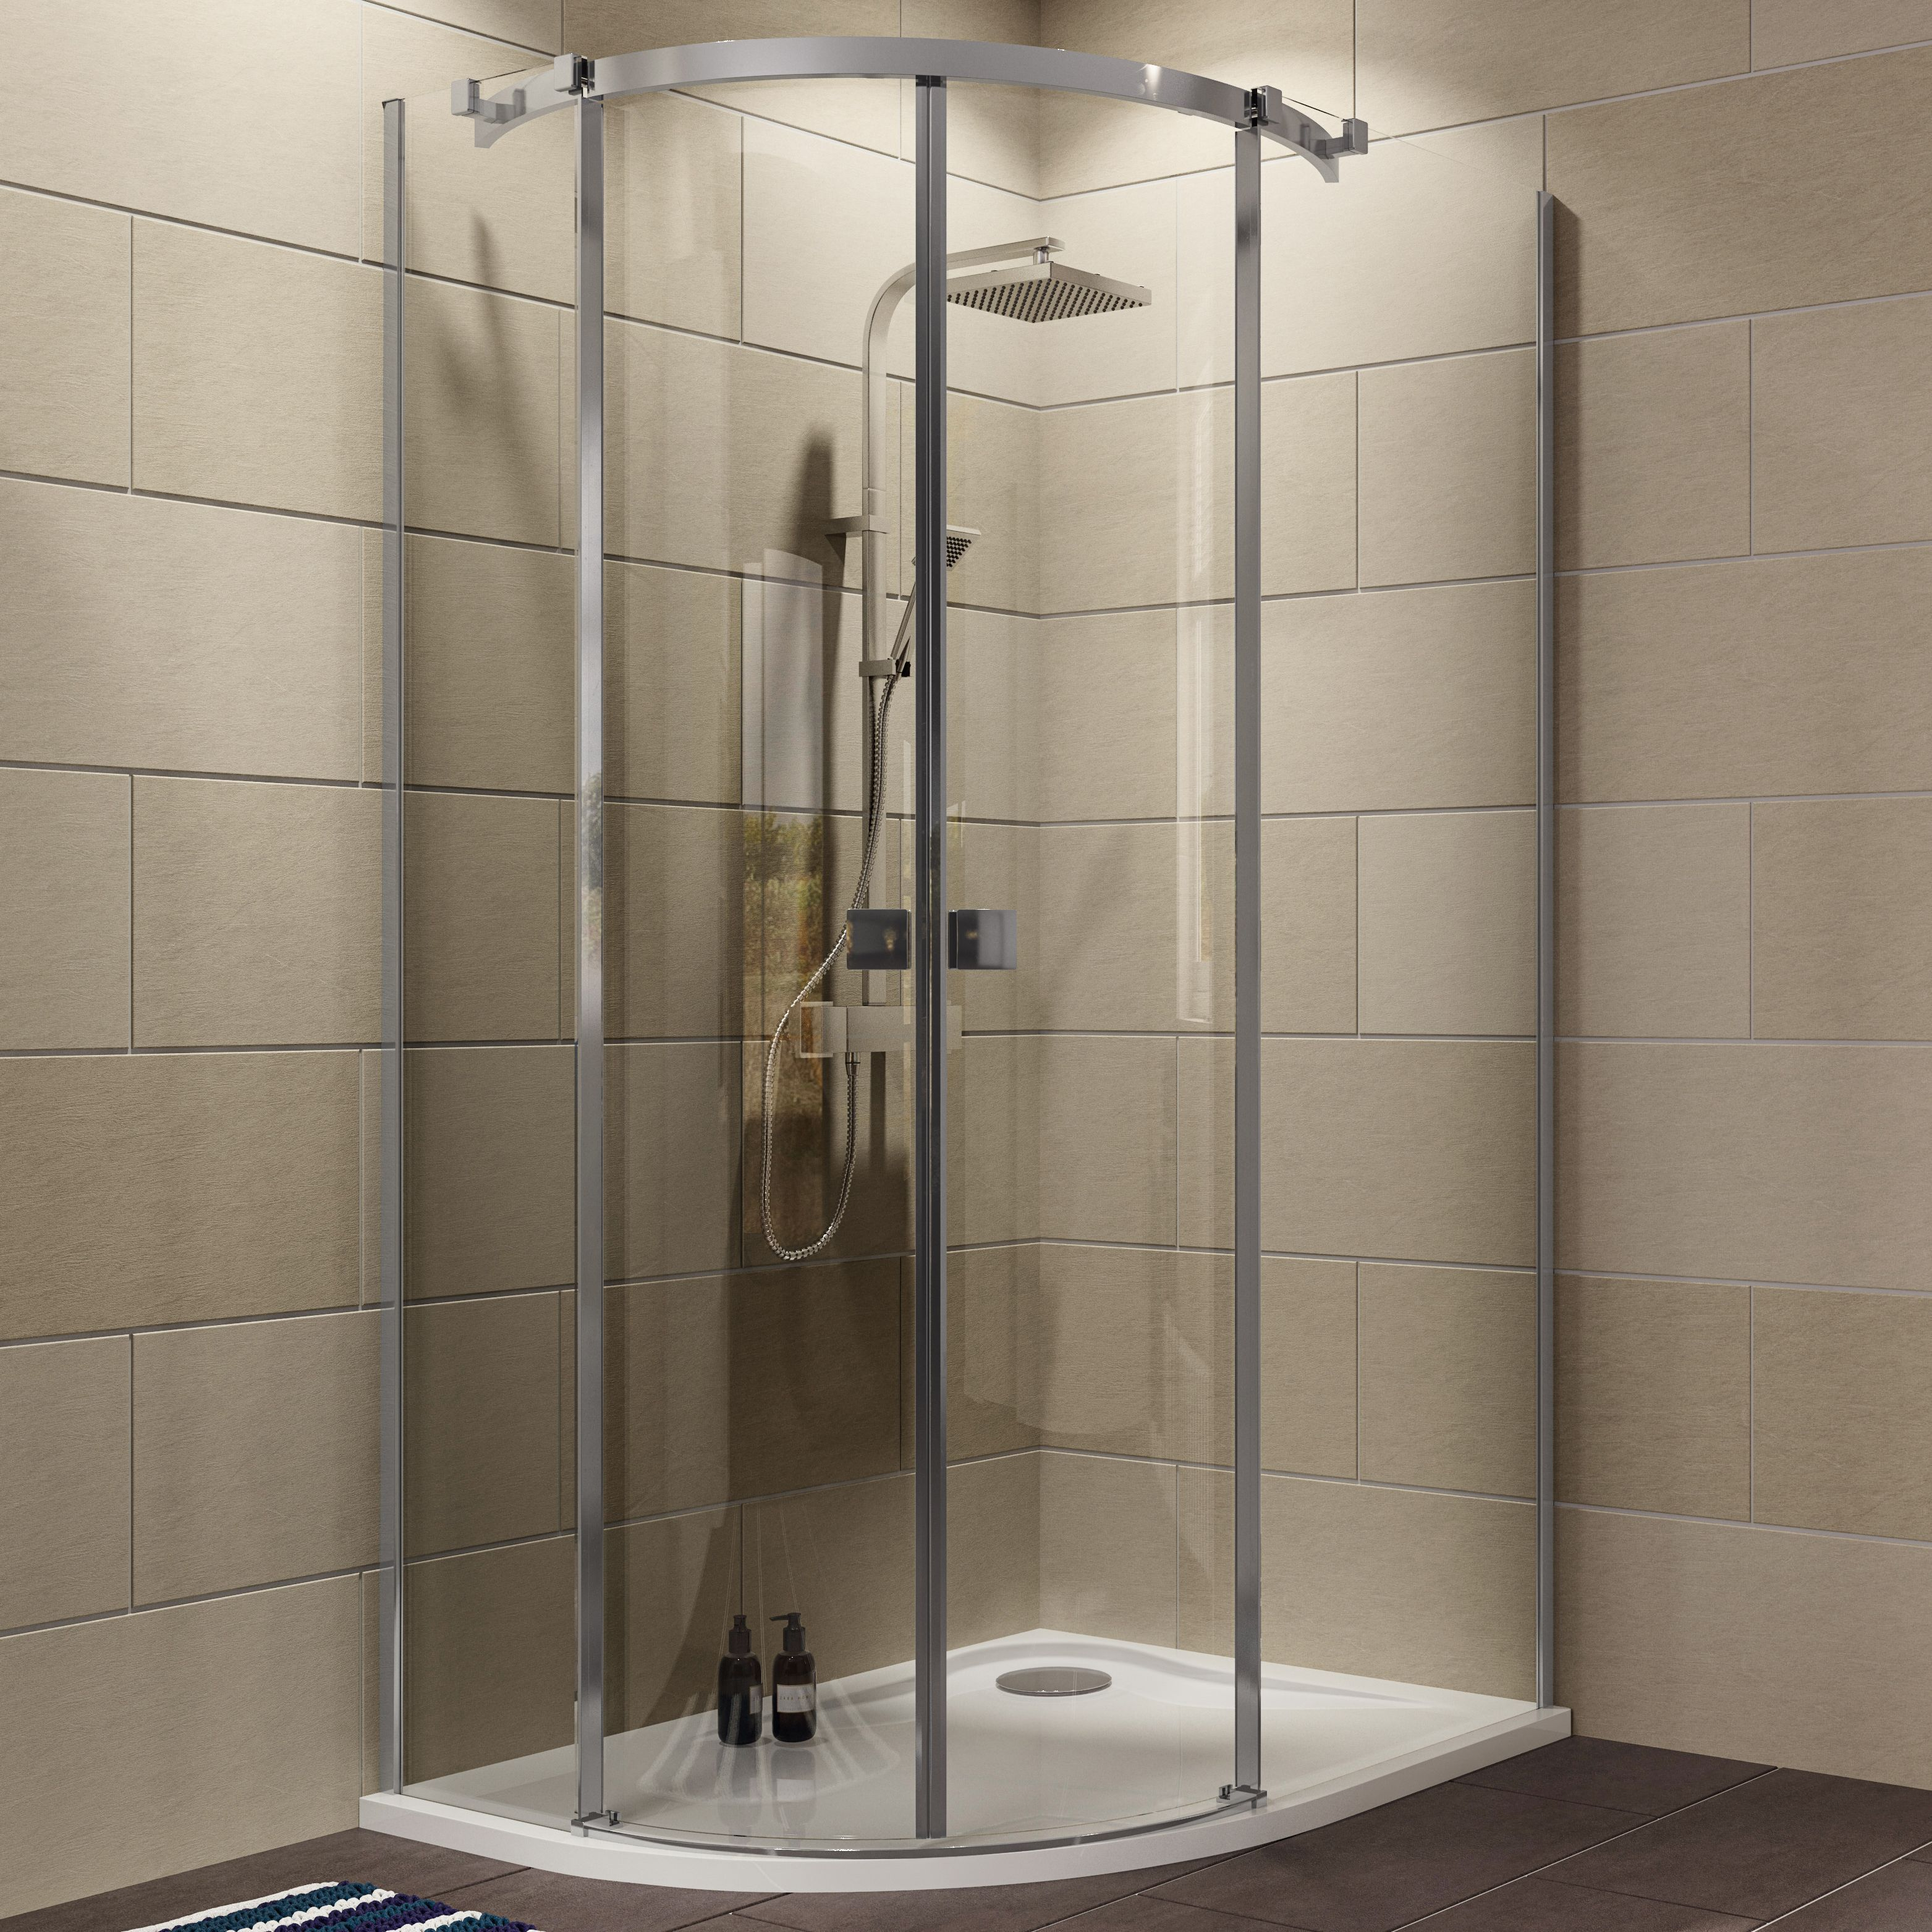 Cooke & Lewis Luxuriant Offset Quadrant Rh Shower Enclosure, Tray & Waste Pack With Double Sliding Doors (w)1200mm (d)90